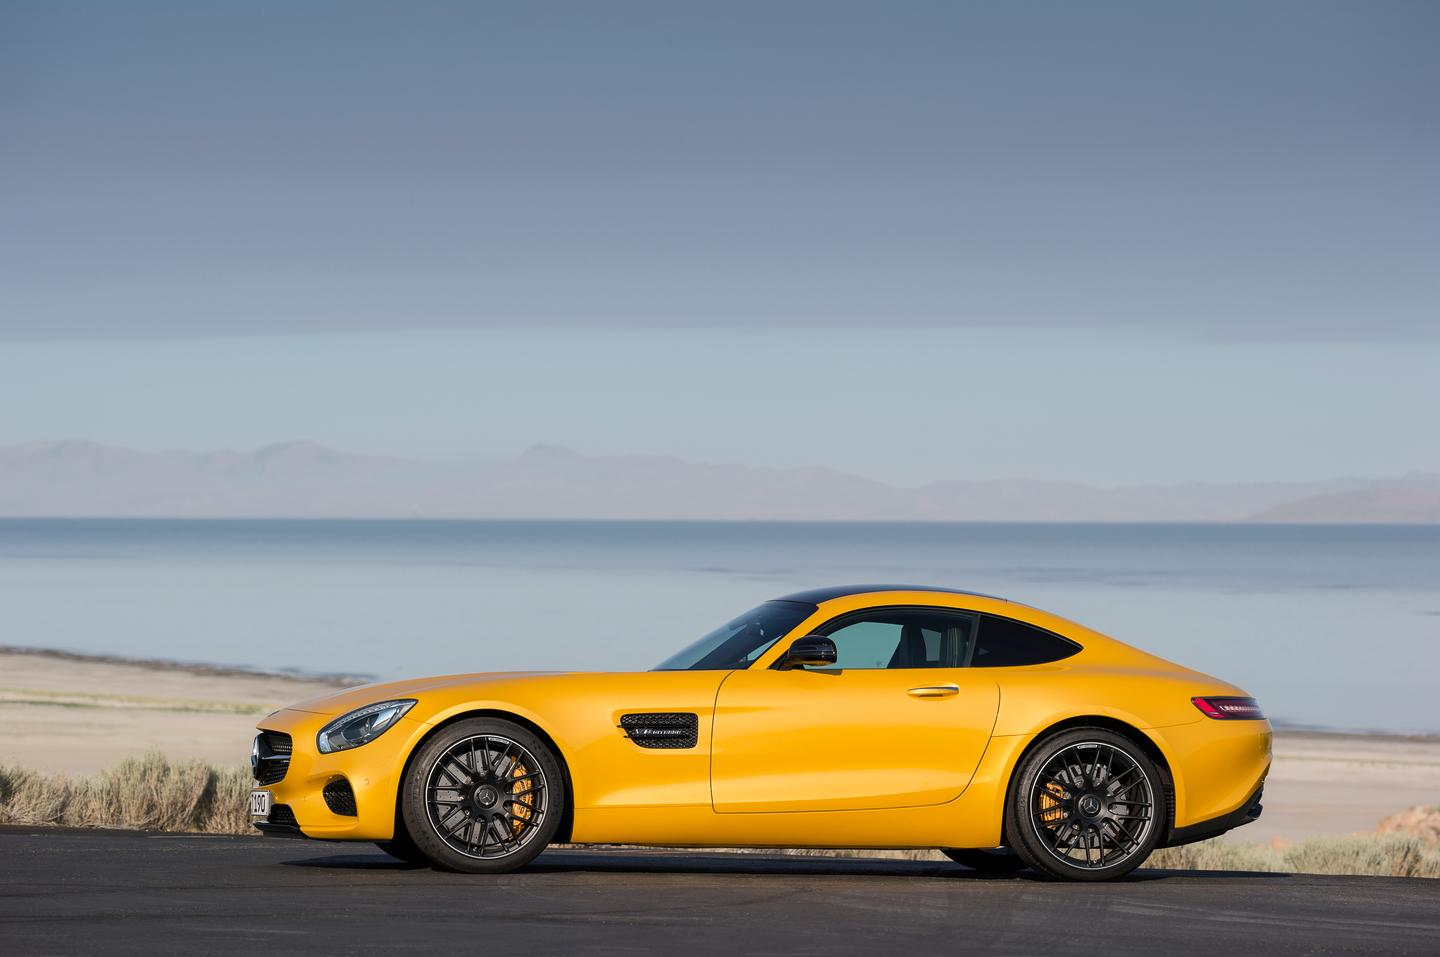 The new AMG GT coupe debuts Mercedes' new twin-turbo V8